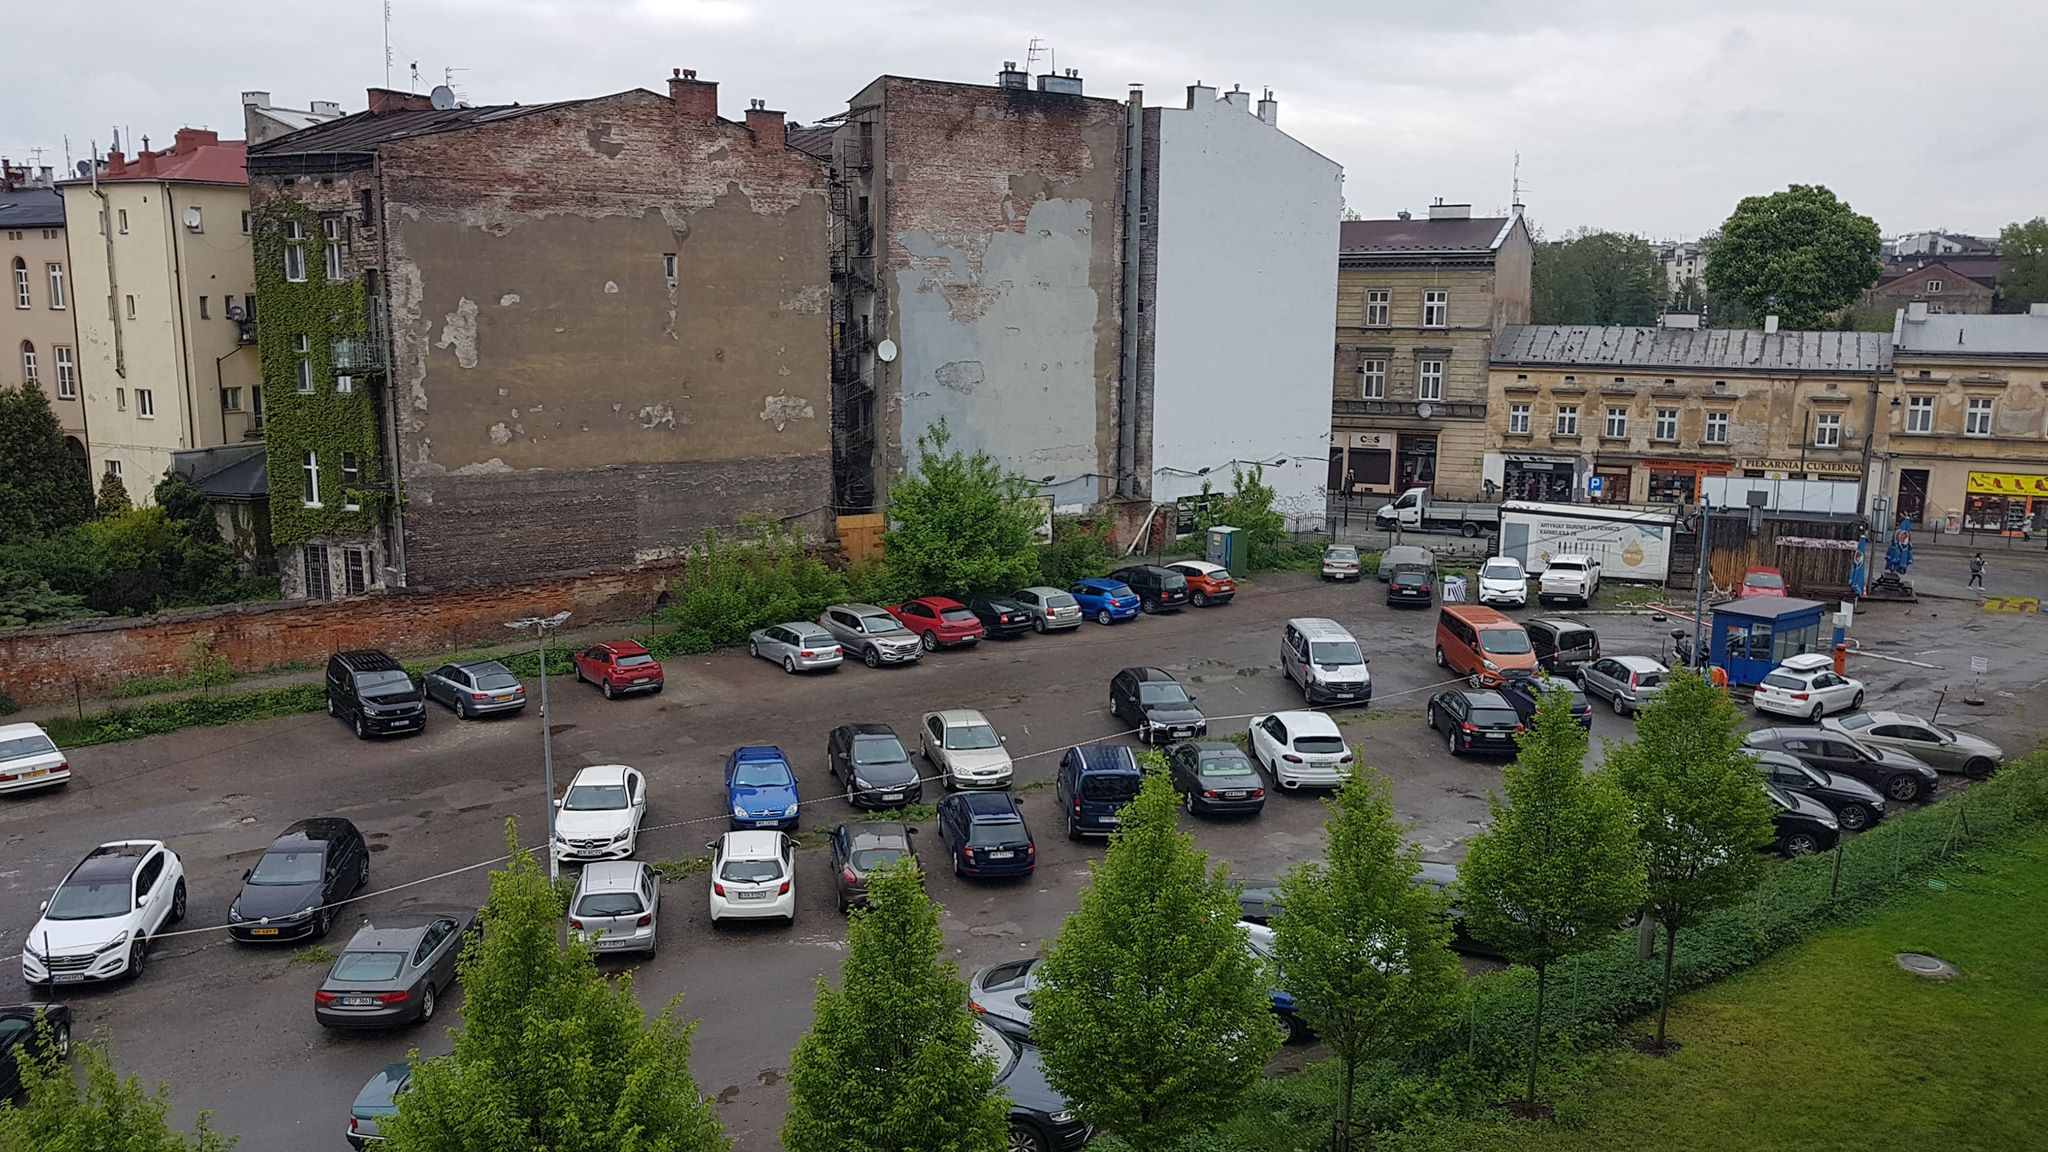 Cracovians have decided that next year this will be a park (photo via the city of Krakow)